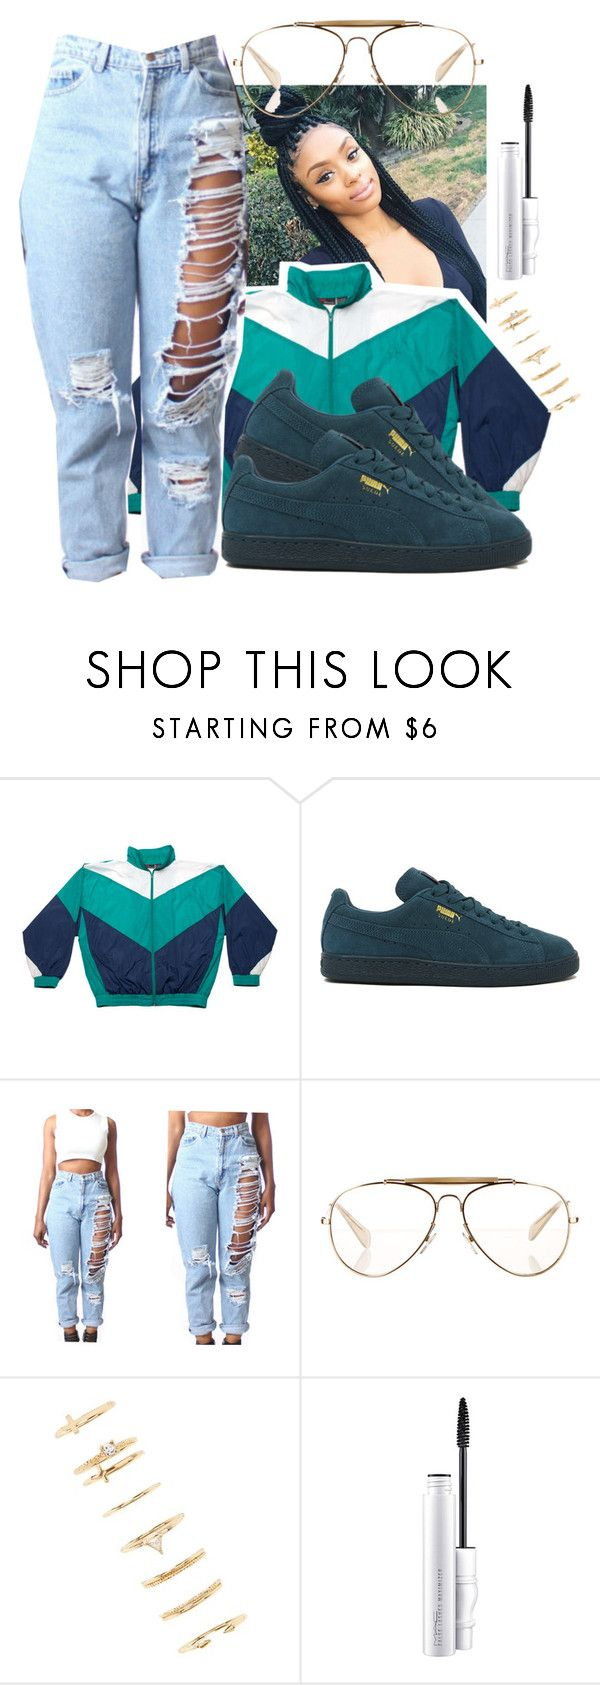 """""""Untitled #578"""" by the-fashion-fantasy ❤ liked on Polyvore featuring Dunlop, Puma, CÉLINE, Forever 21, MAC Cosmetics, denim, sporty, trend and distresseddenimm"""